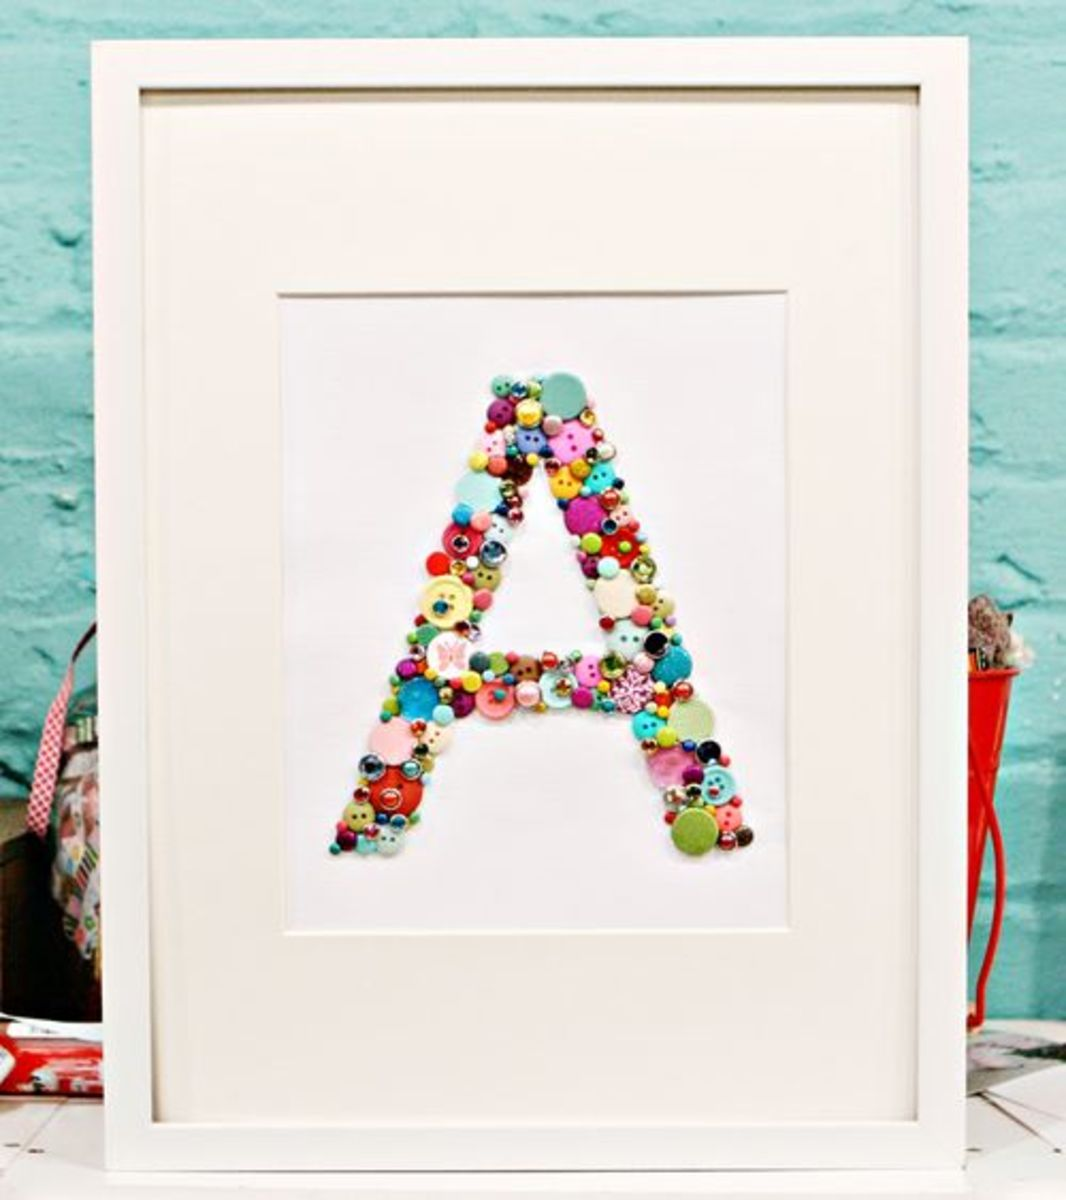 Framed Buttons Monogram